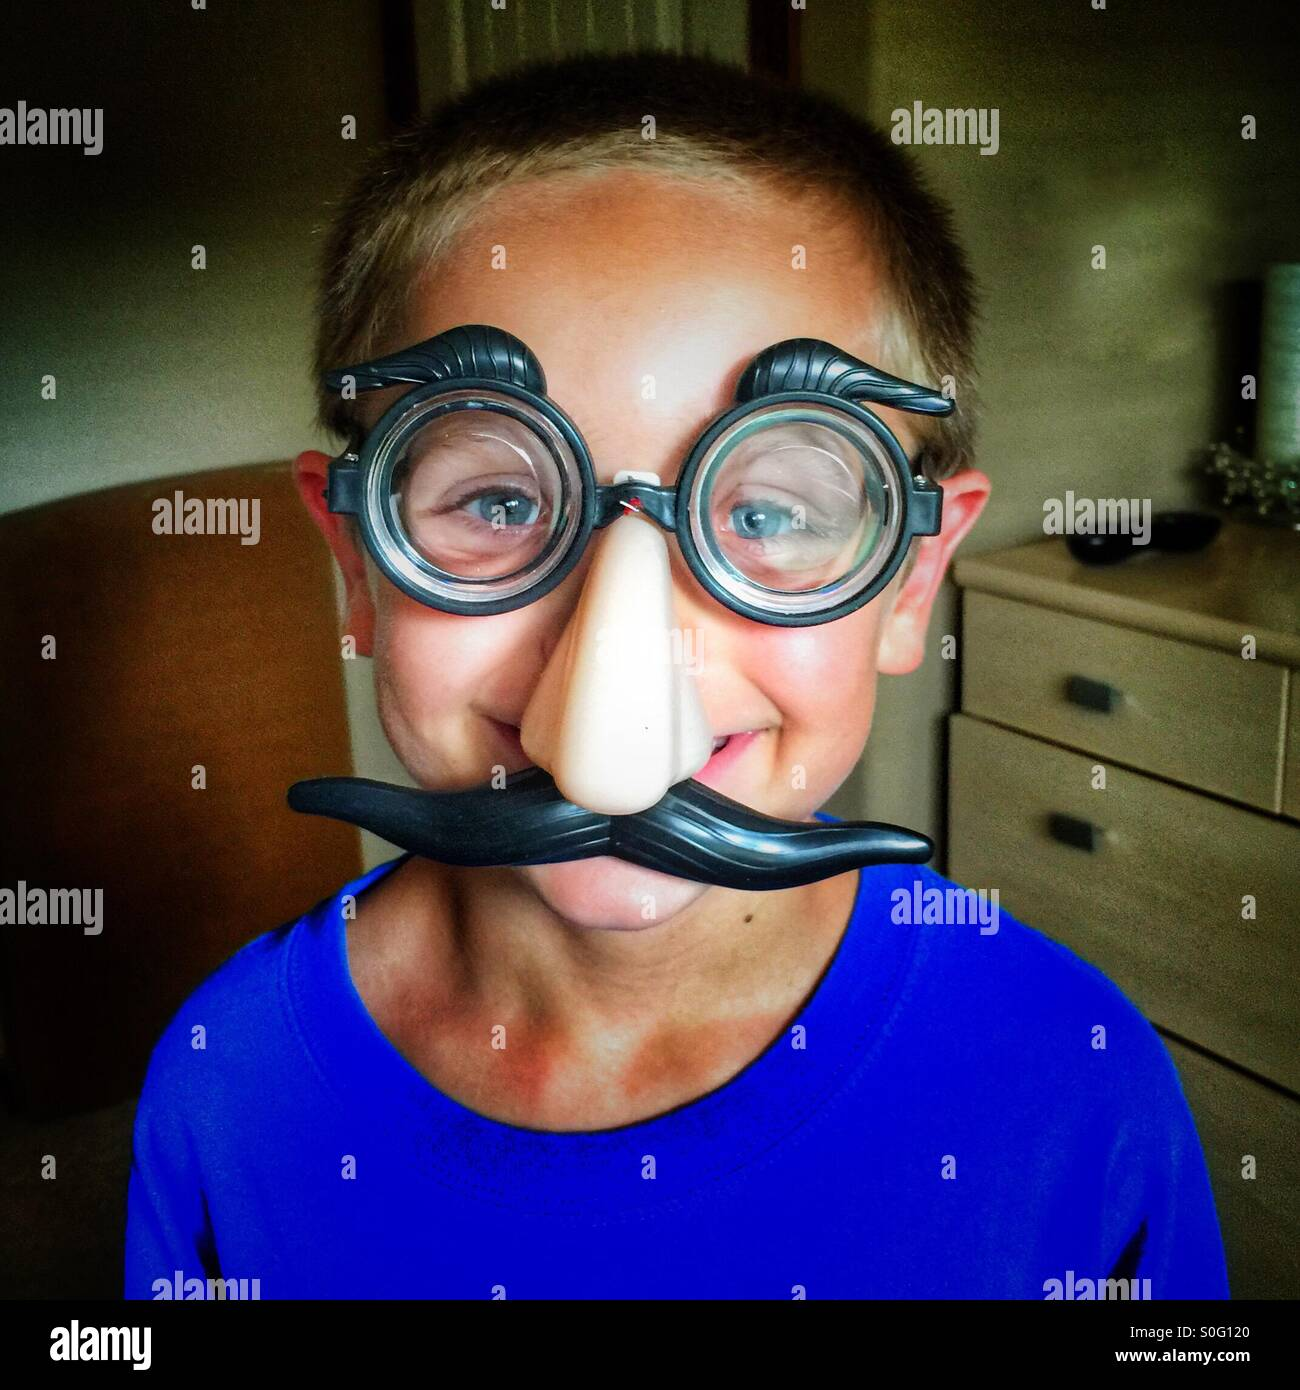 Young boy wearing a funny mask with glasses, nose, and a mustache - Stock Image